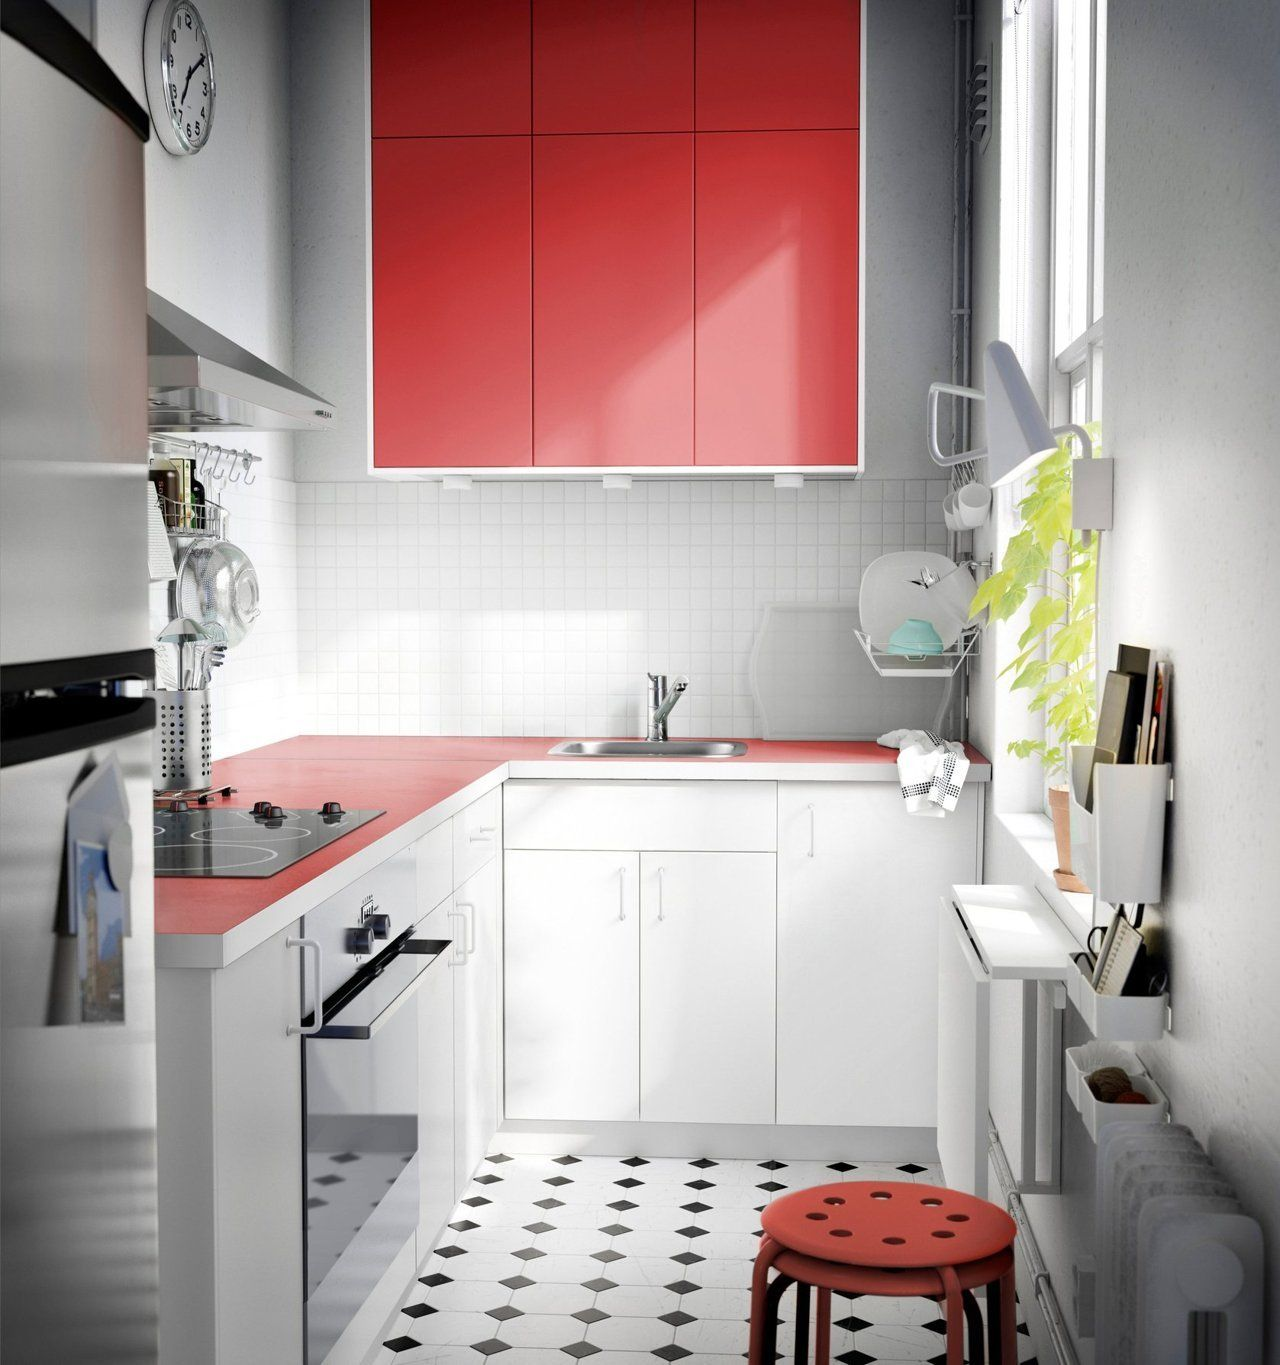 10 Kitchen Ideas We Picked Up from IKEA's New 2015 Catalog